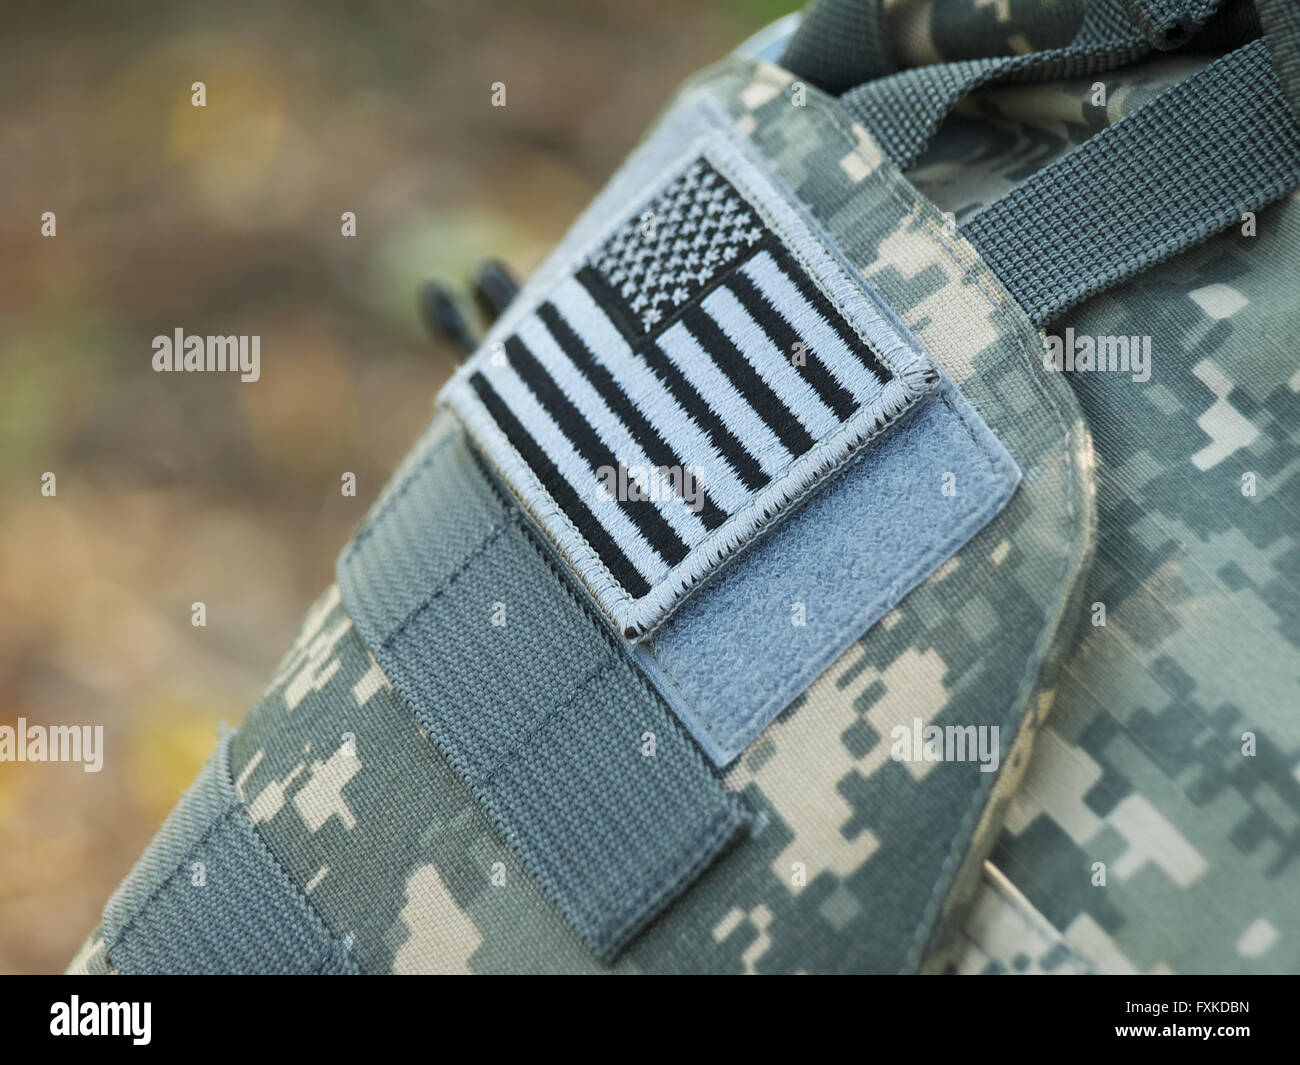 US Army uniform element - sleeve patch with flag (ACU pattern) - Stock Image